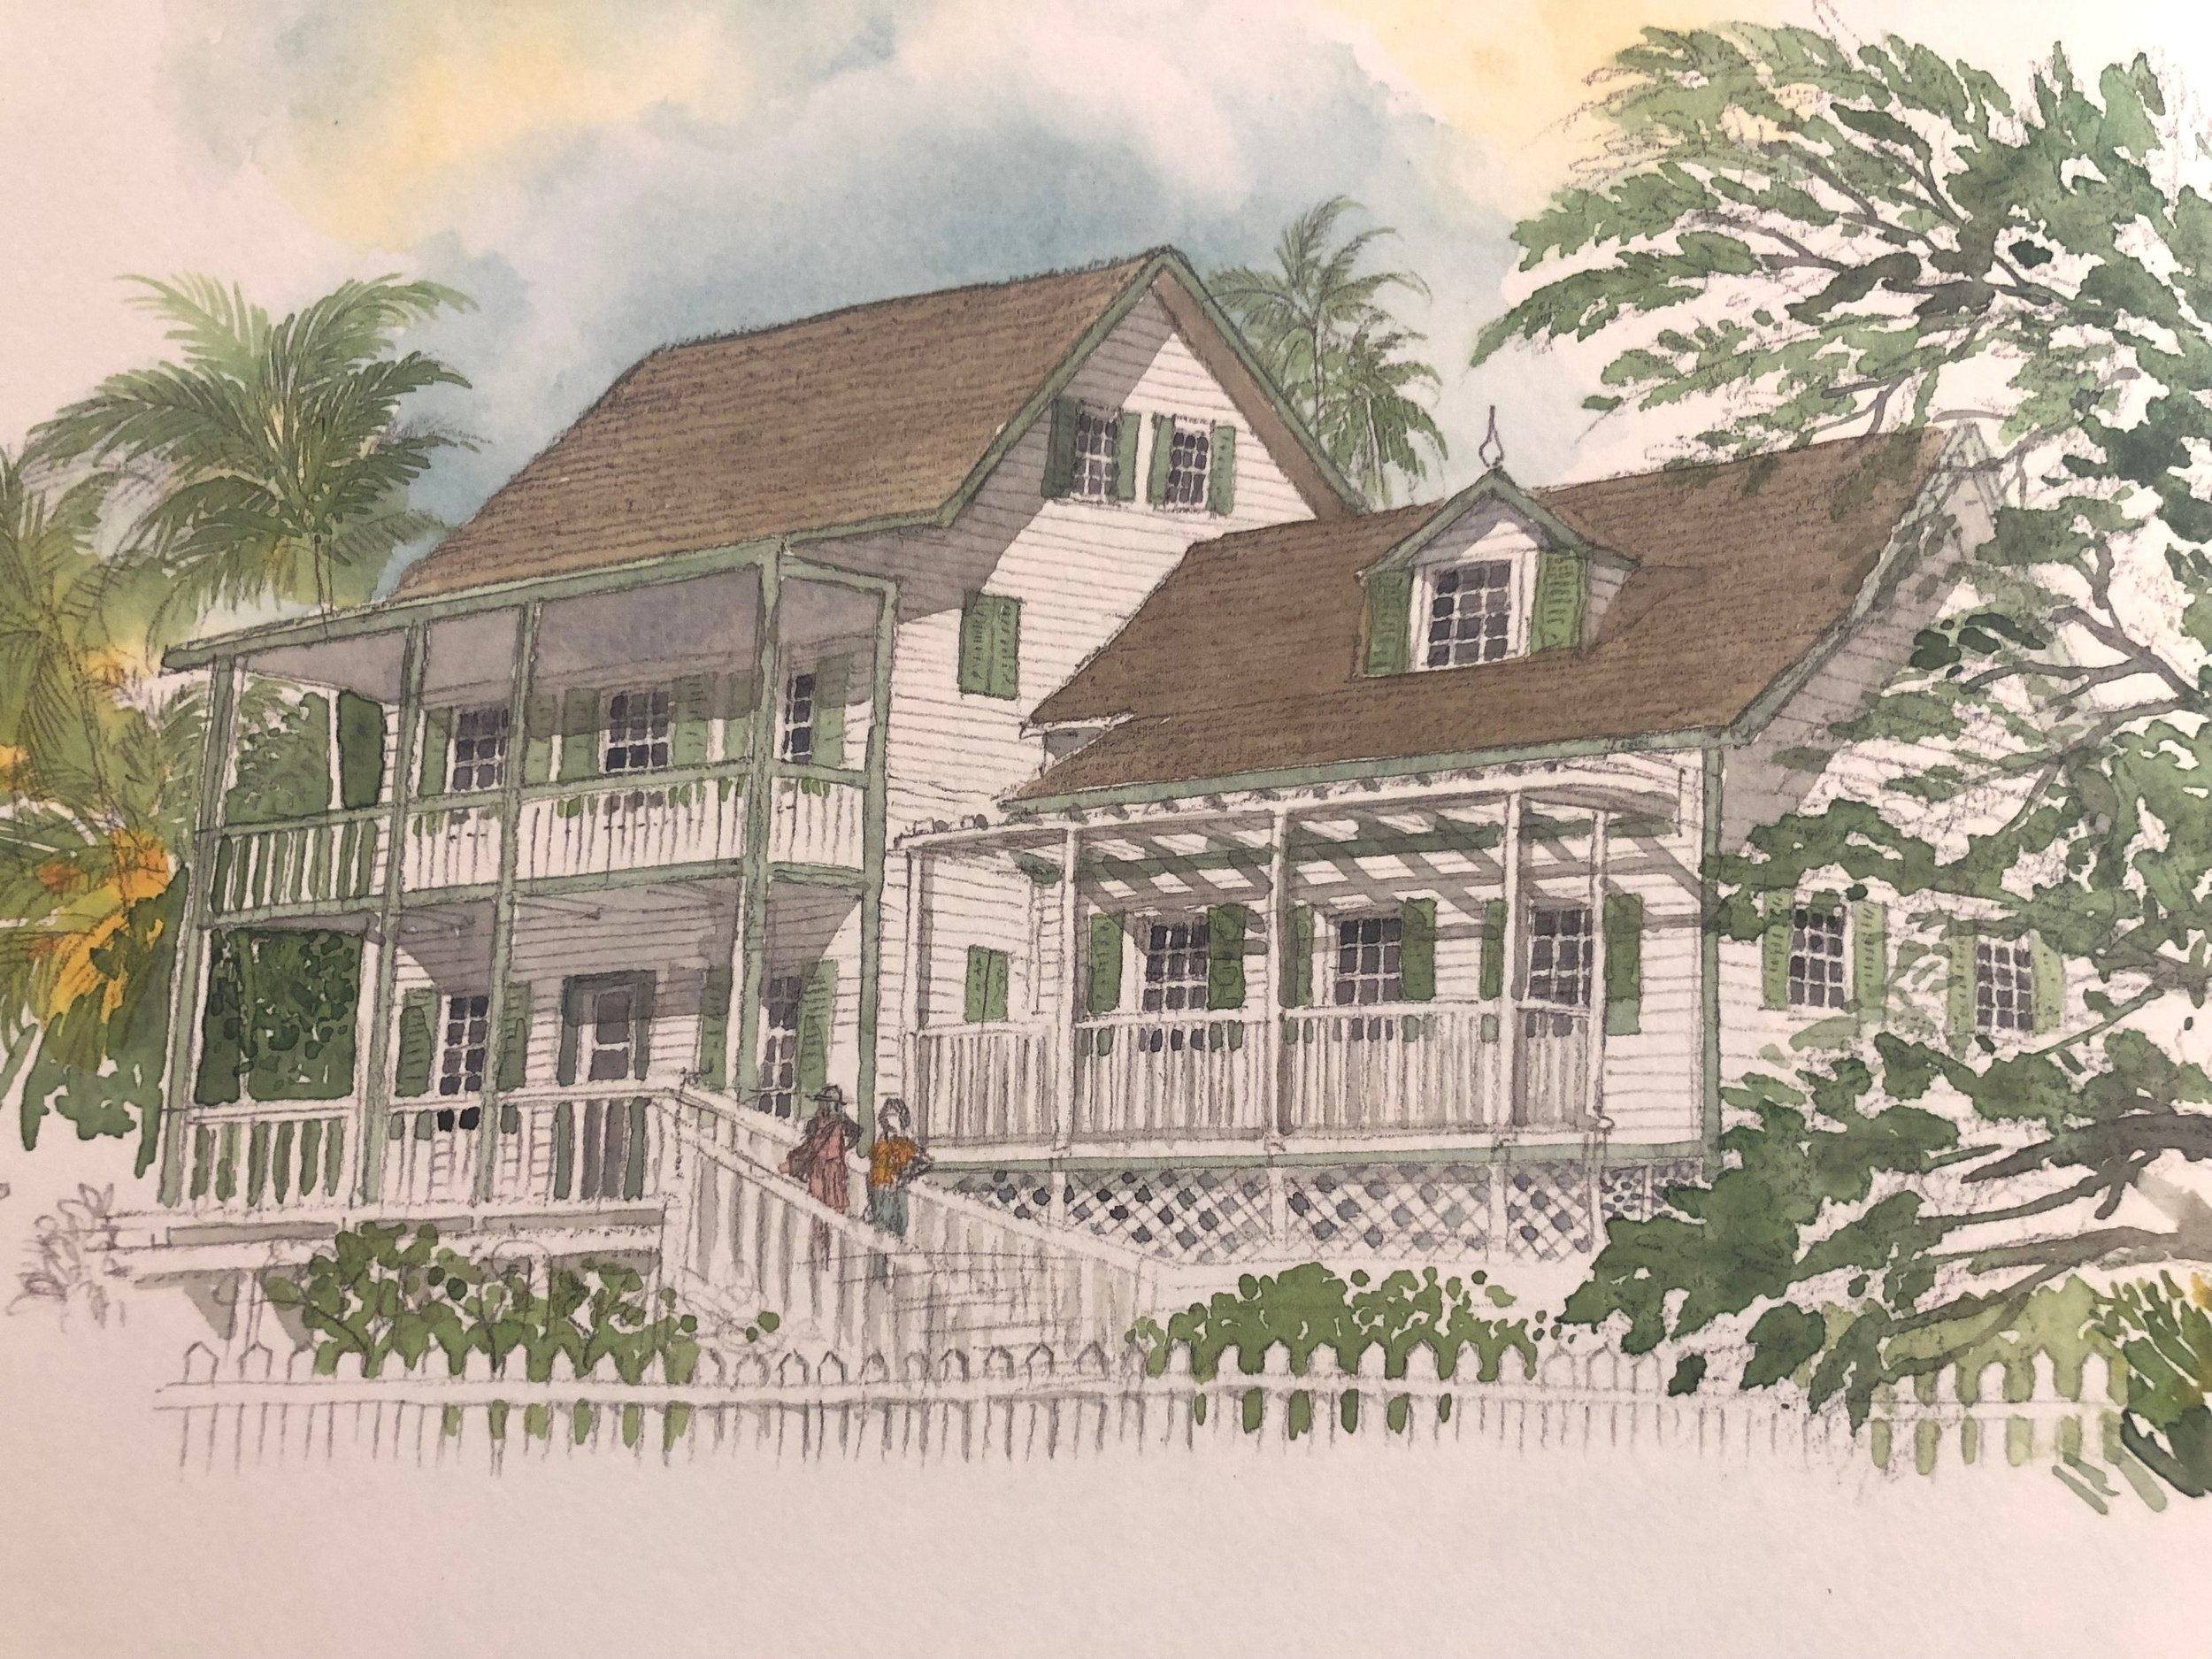 The Wyannie Malone Historical Museum. Image from Bahamas Sketchbook.